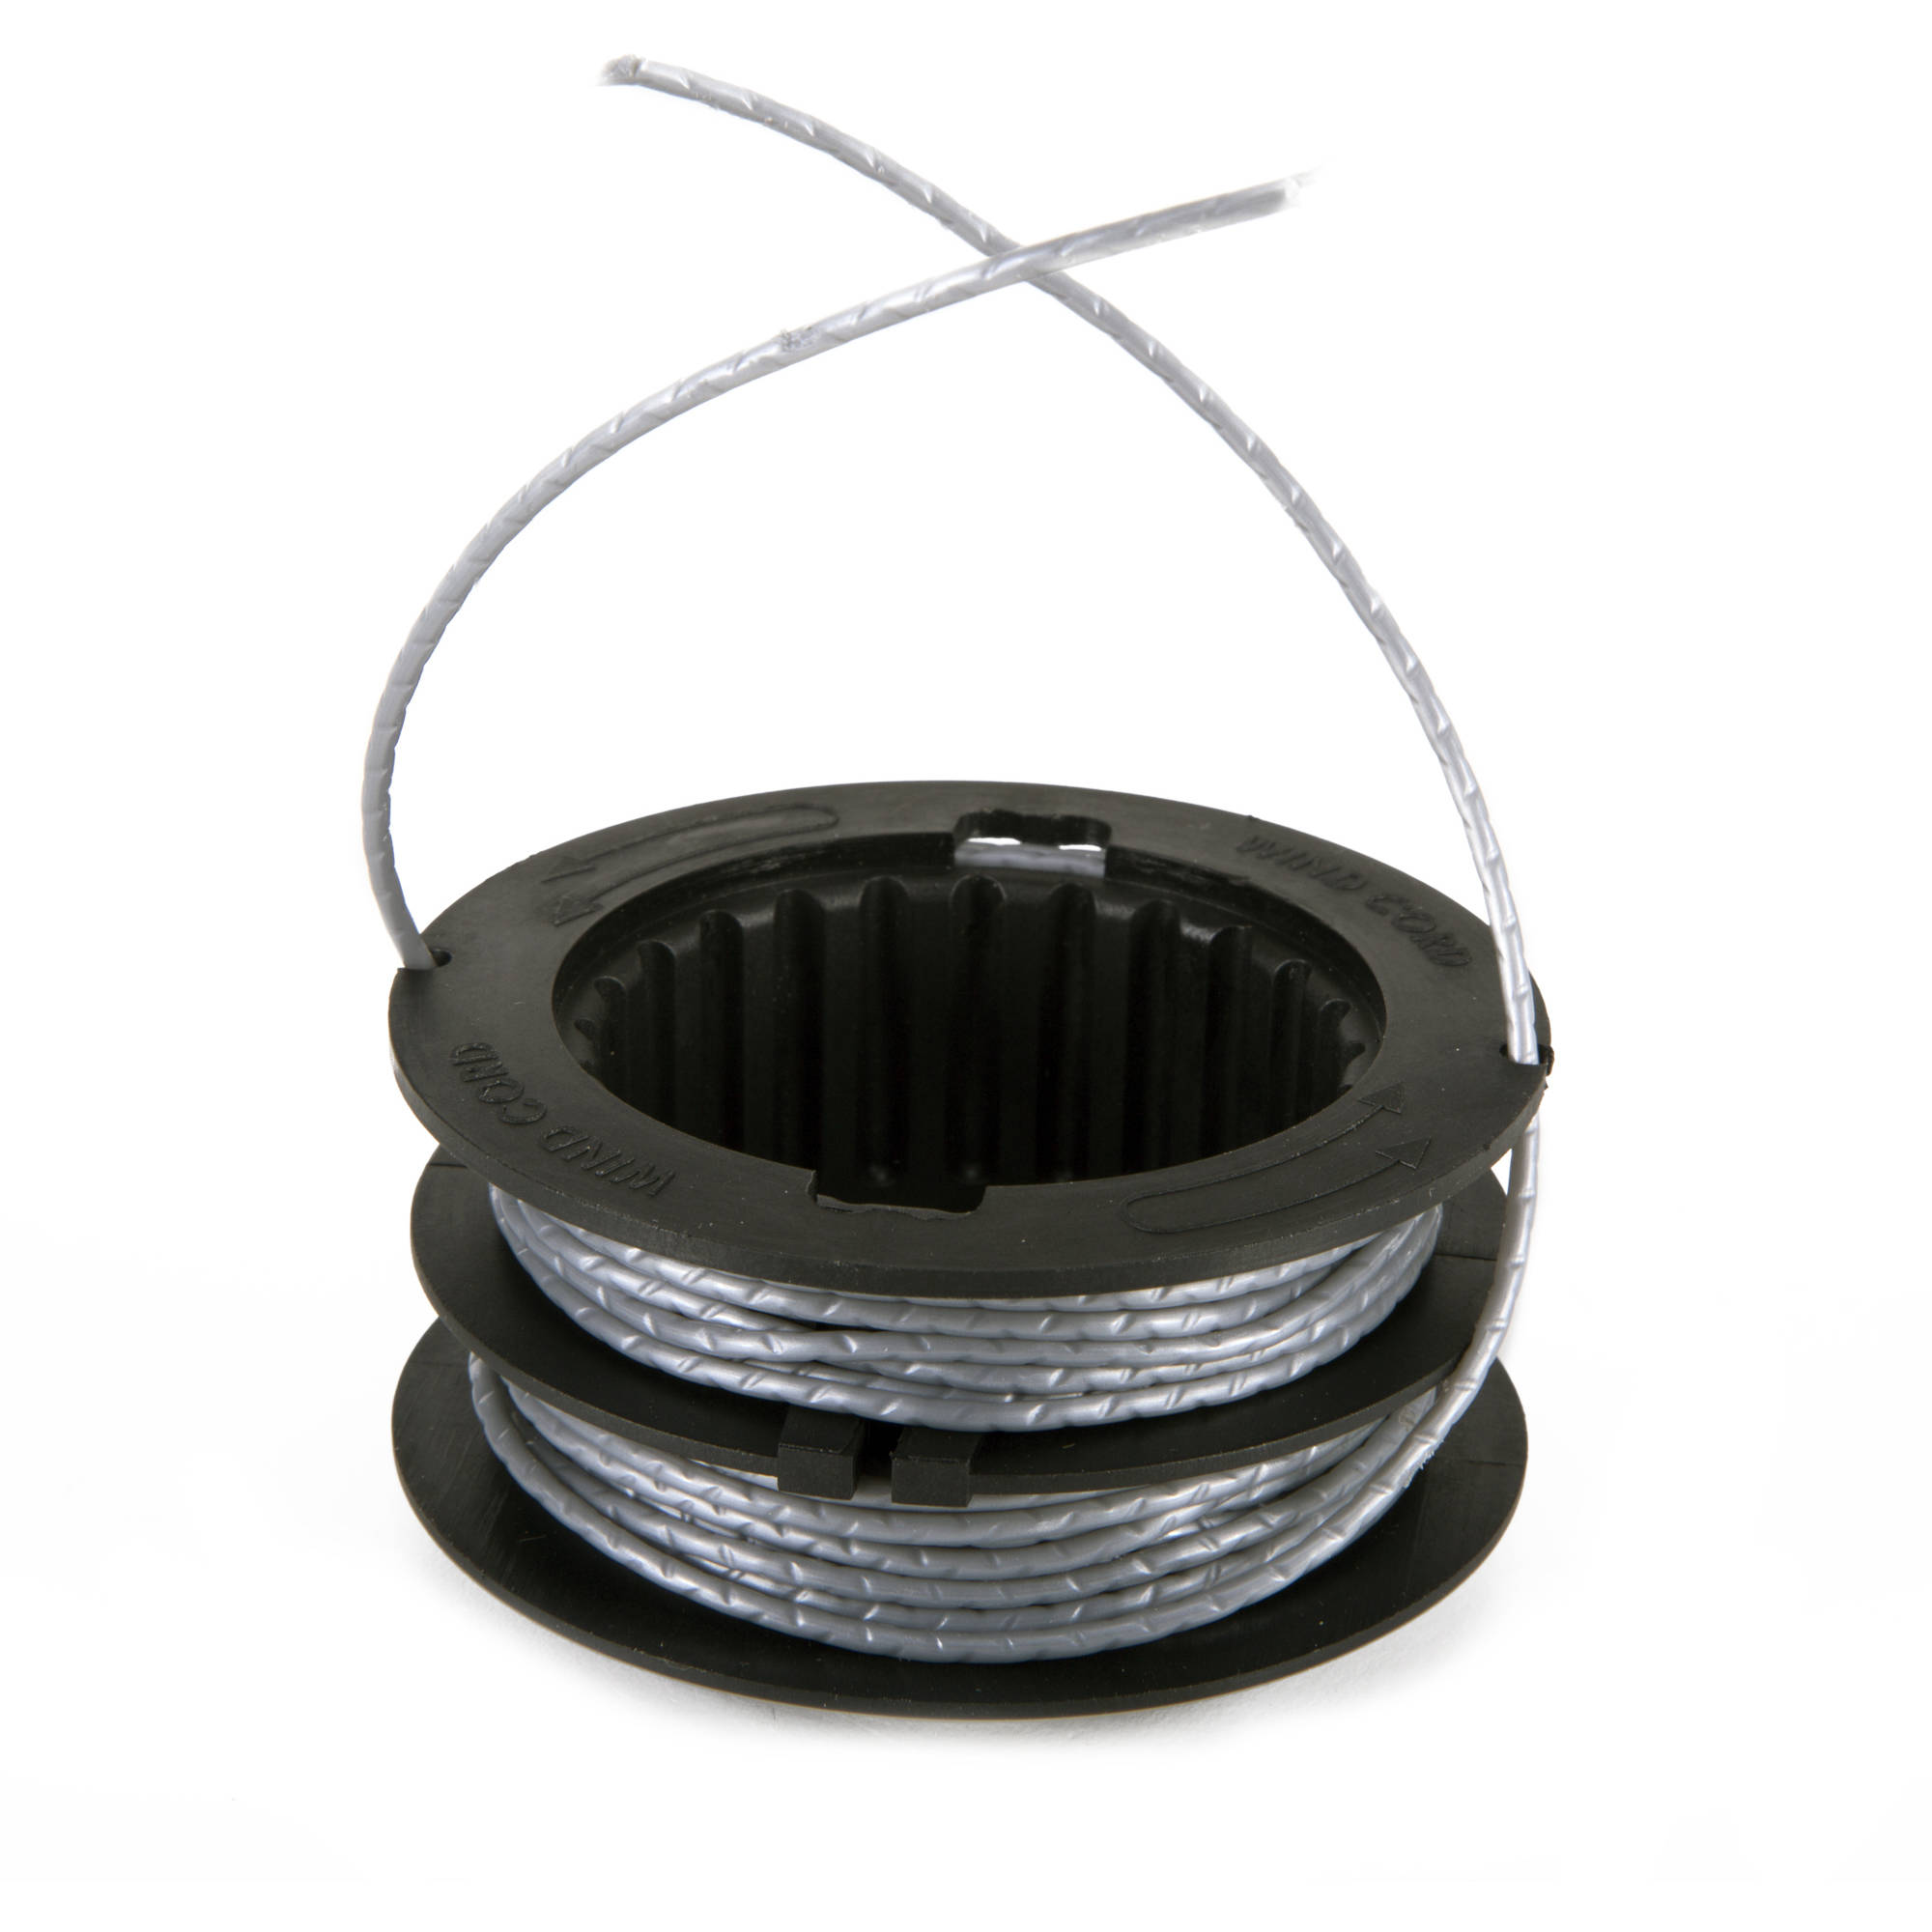 Snapper ST60V and ST60V-TO String Trimmer Replacement Spool